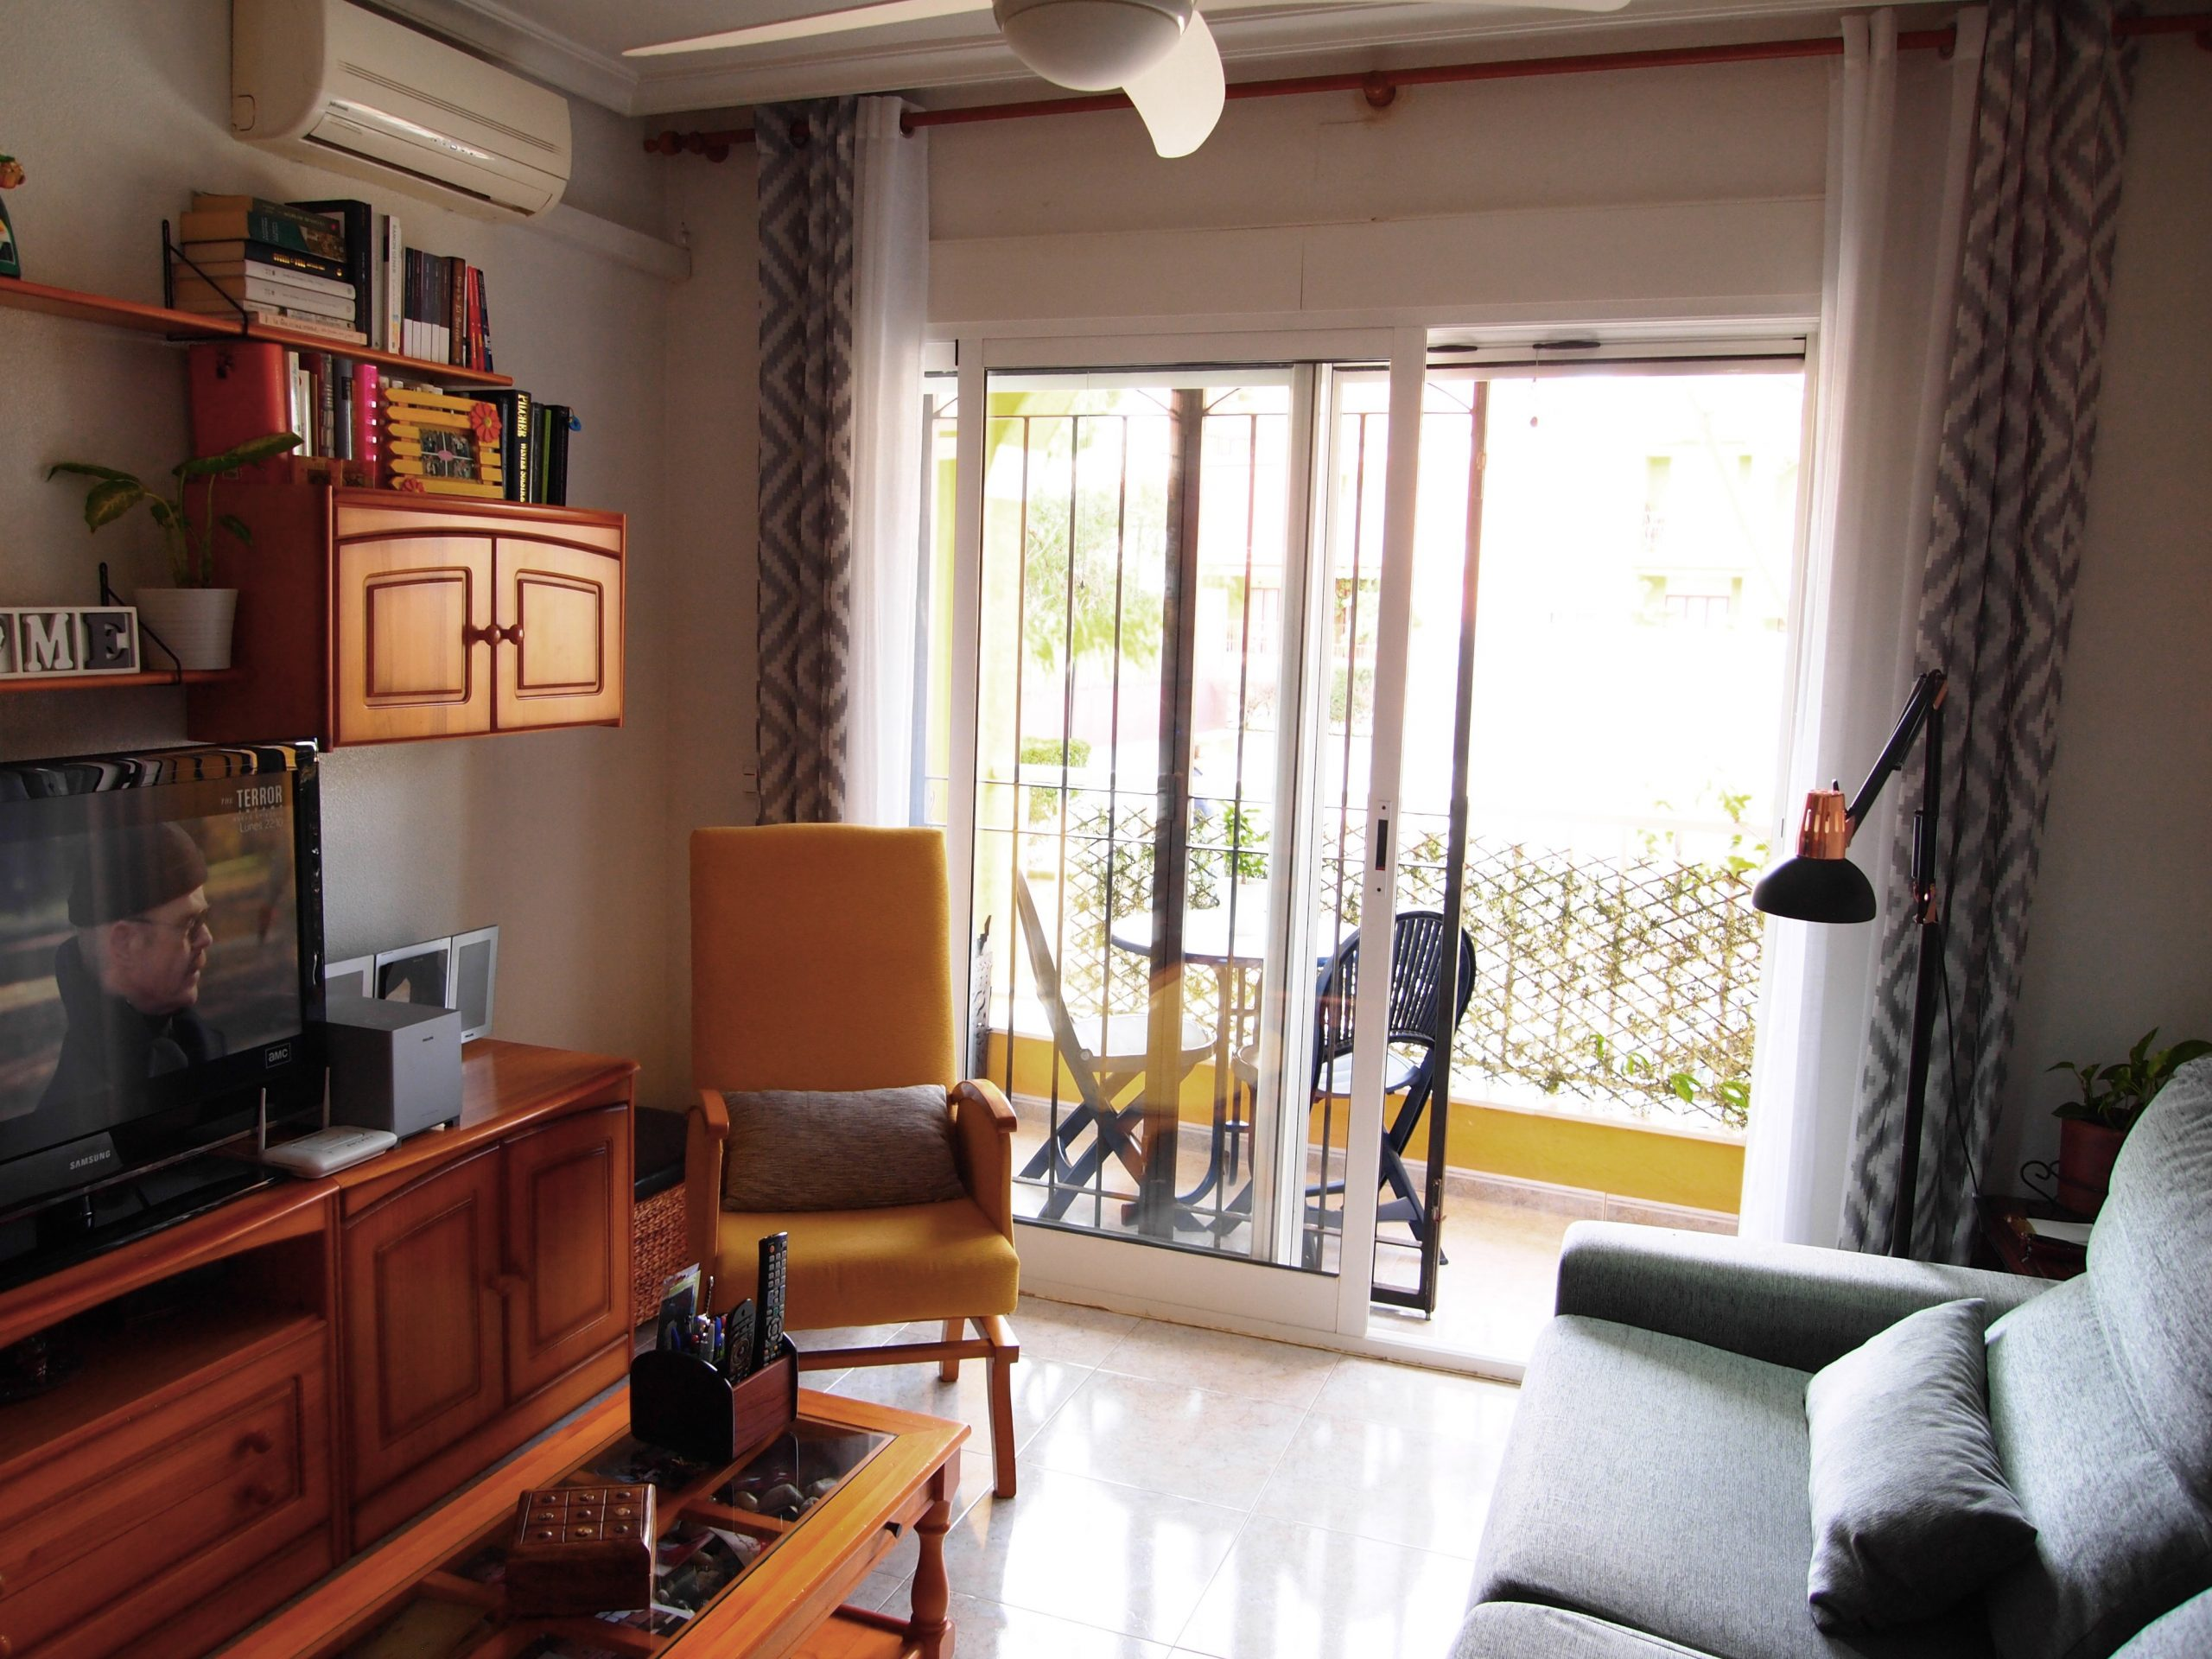 8001. BEAUTIFUL APARTMENT 2 BED GROUND FLOOR TERRACE & GARAGE  – Bolnuevo